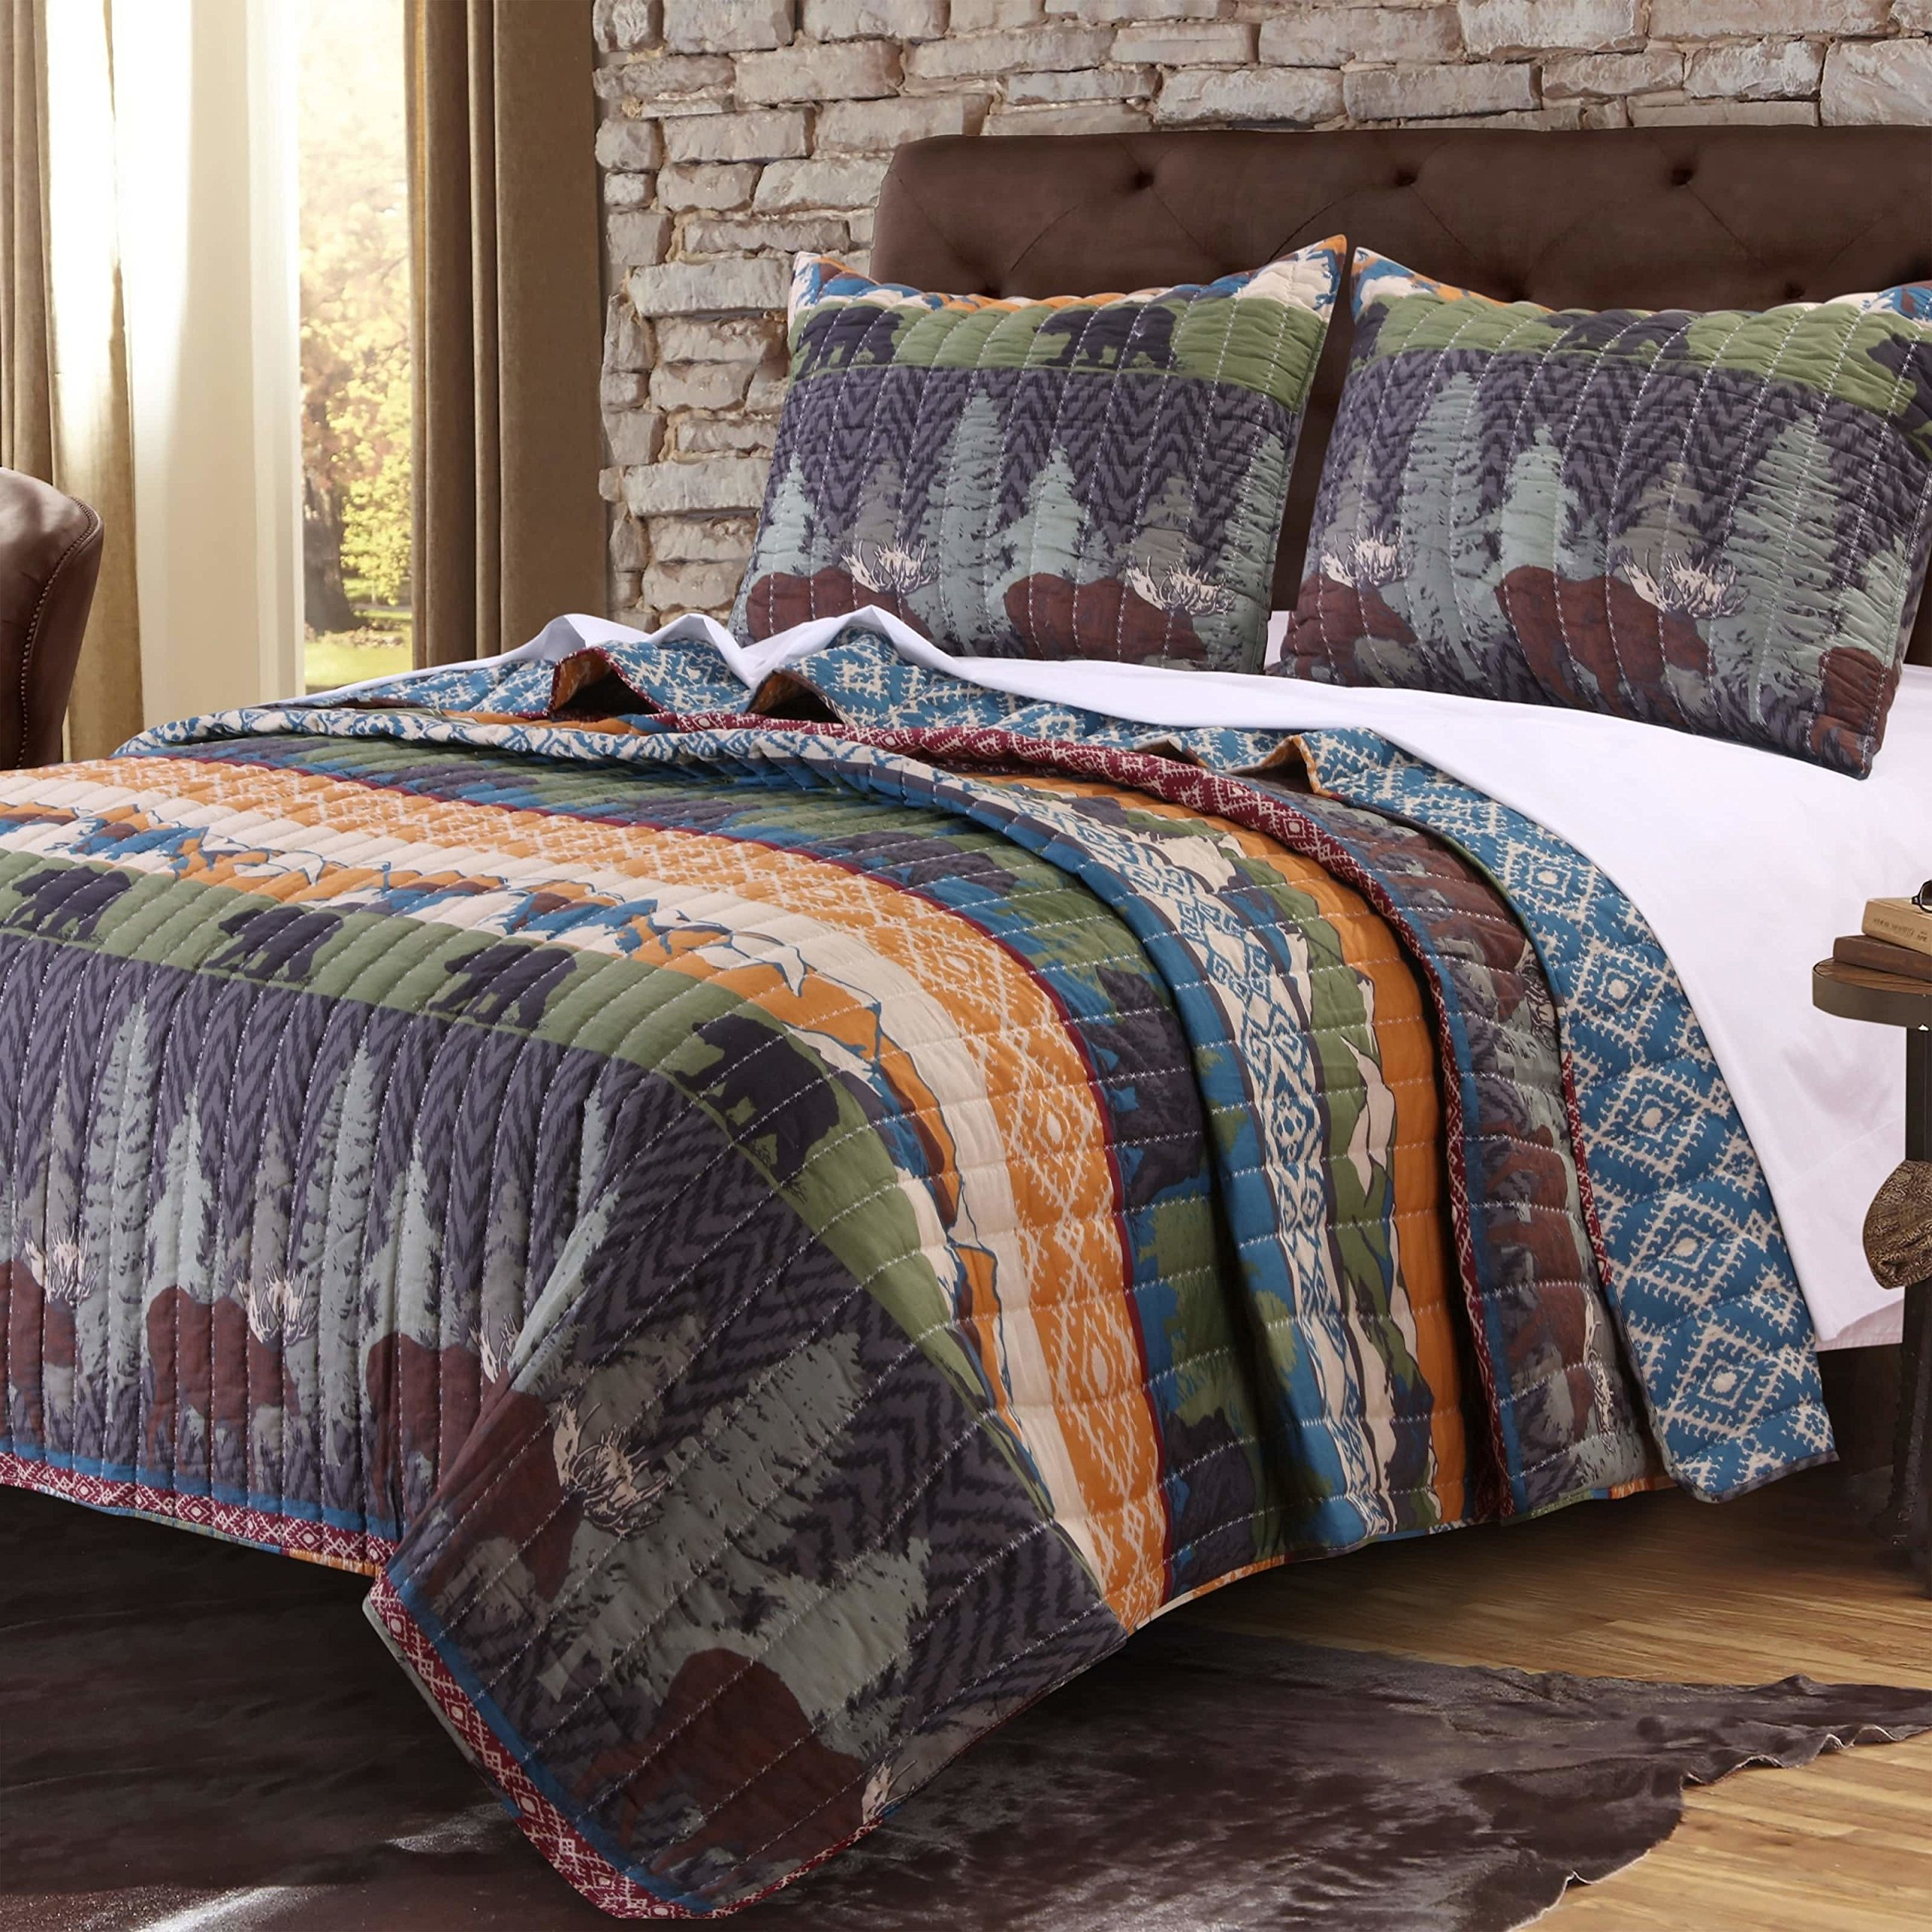 3 Piece Brown Lodge Theme King Quilt Set, Rustic Animal Print Hunting Country Southwest Pine Trees Cabin Bedding Woods Horizontal Stripes Medallion Geometric Pattern, Cotton Polyester